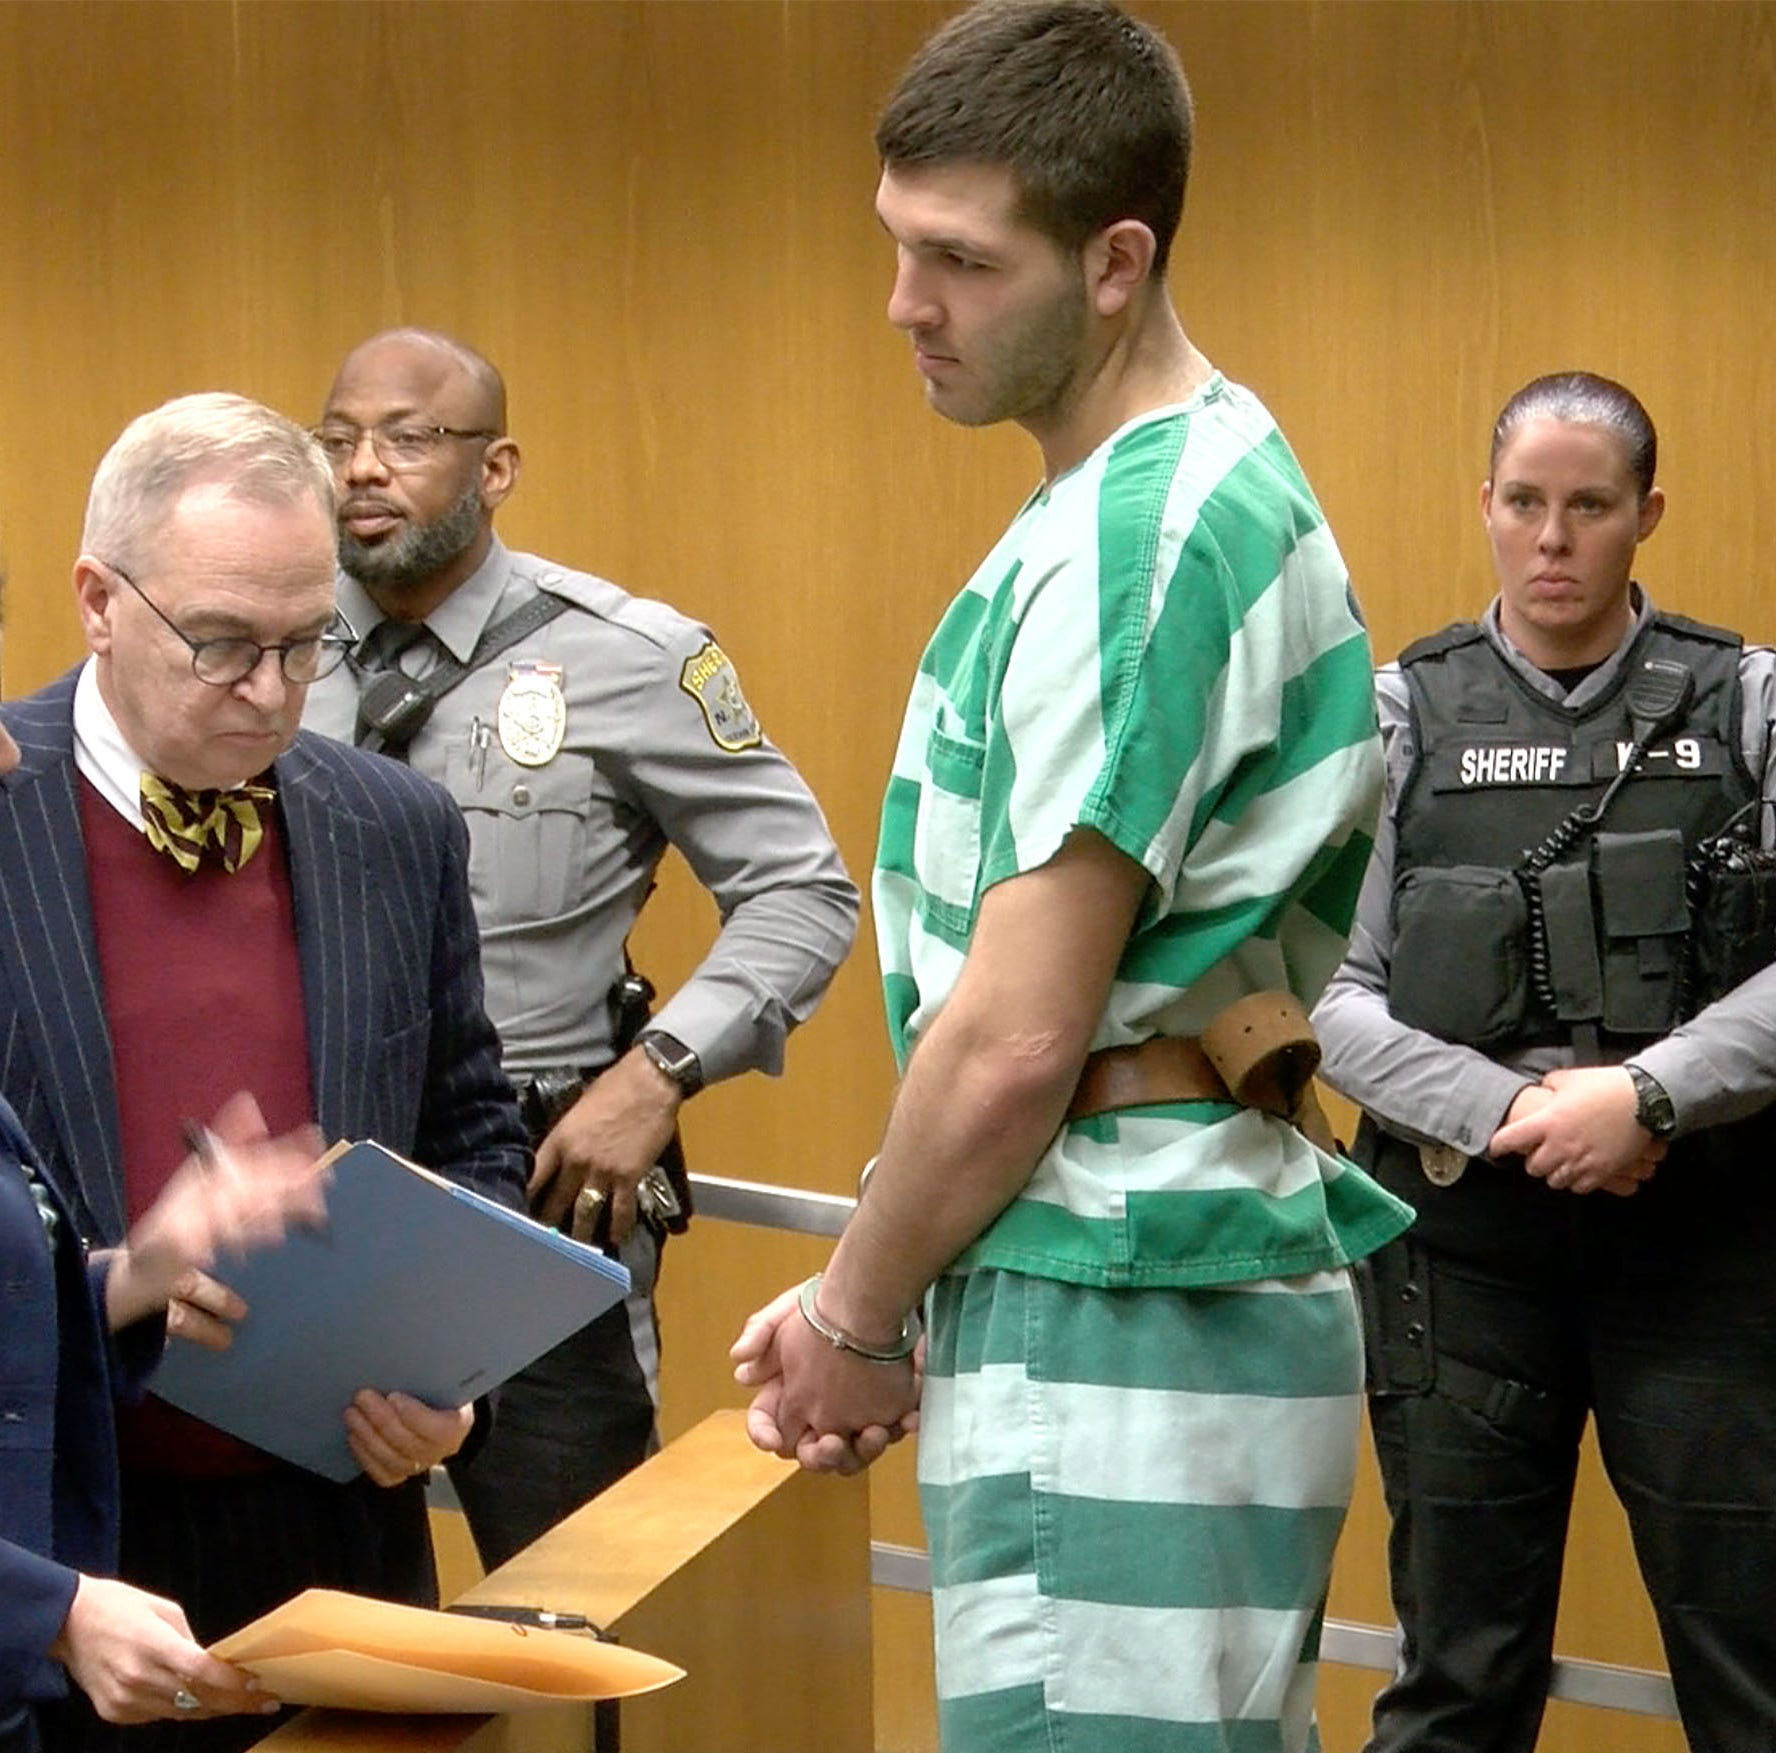 Anthony Comello, suspect in Frank Cali murder, in Toms River court with 'MAGA' on palm